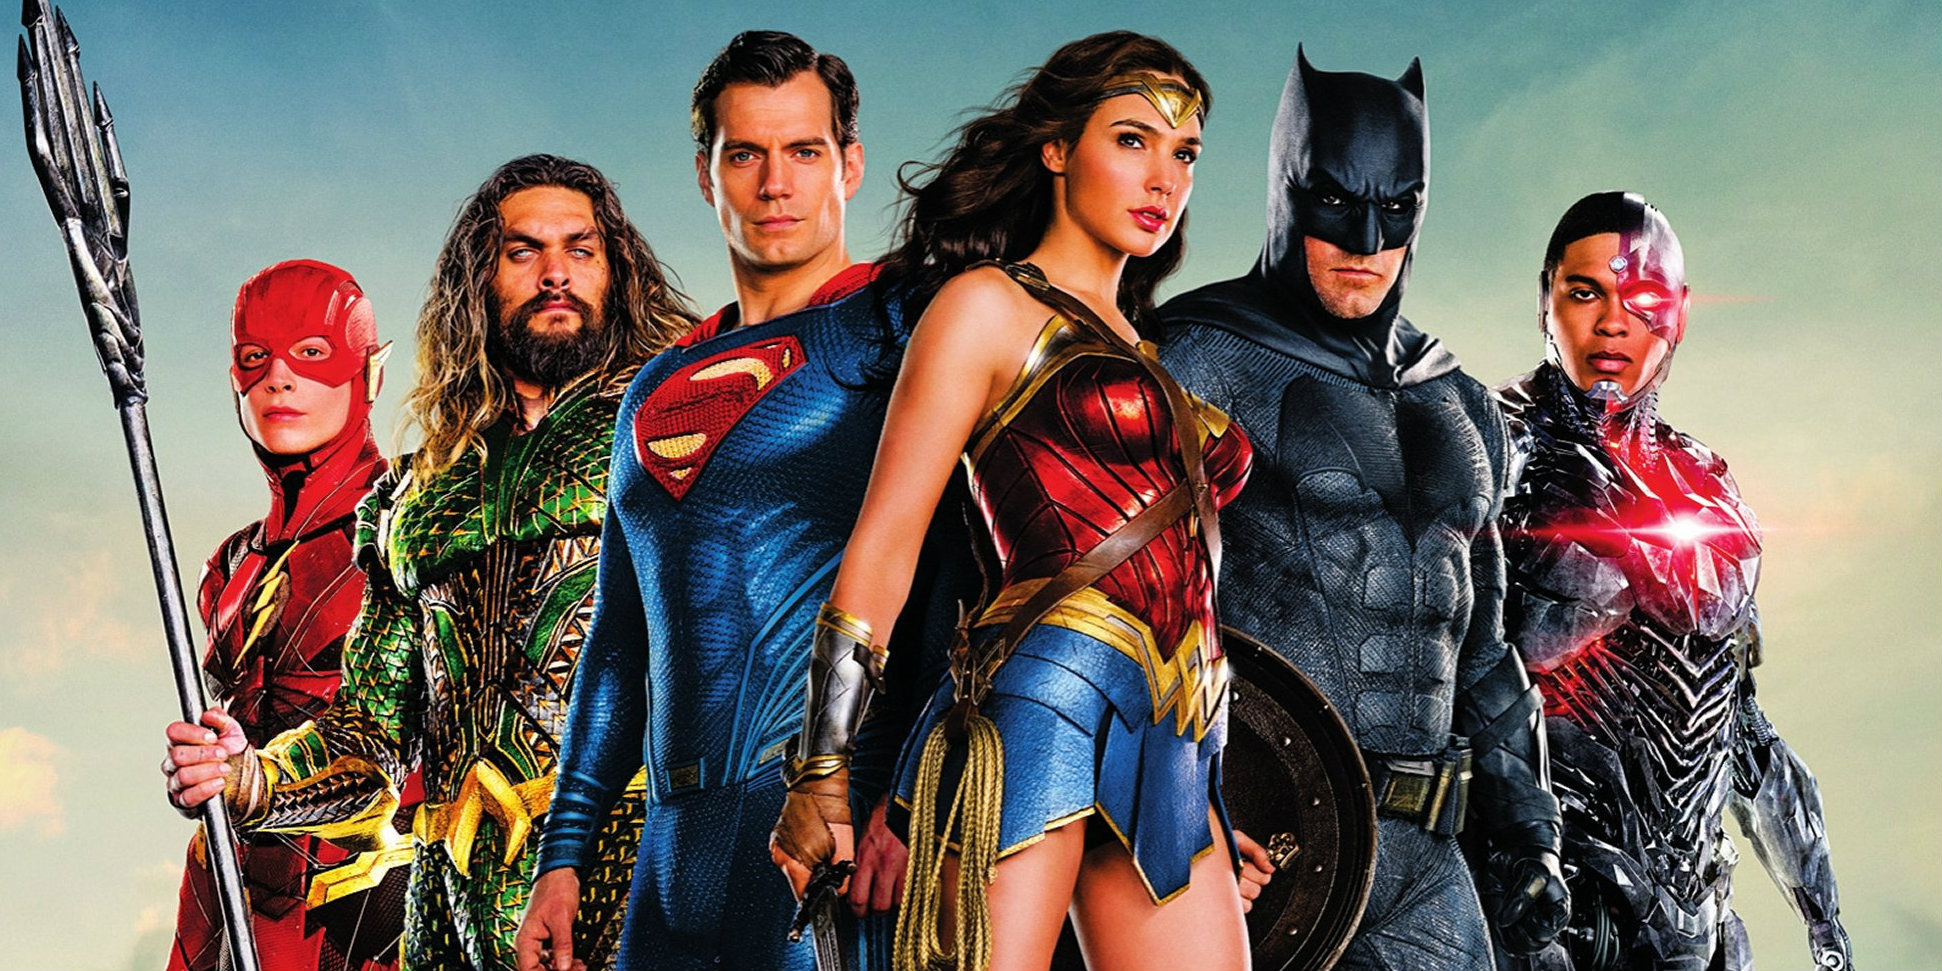 Dc 2019 Movies Poster: Justice League: Blu-ray Deleted Scene & Features Preview